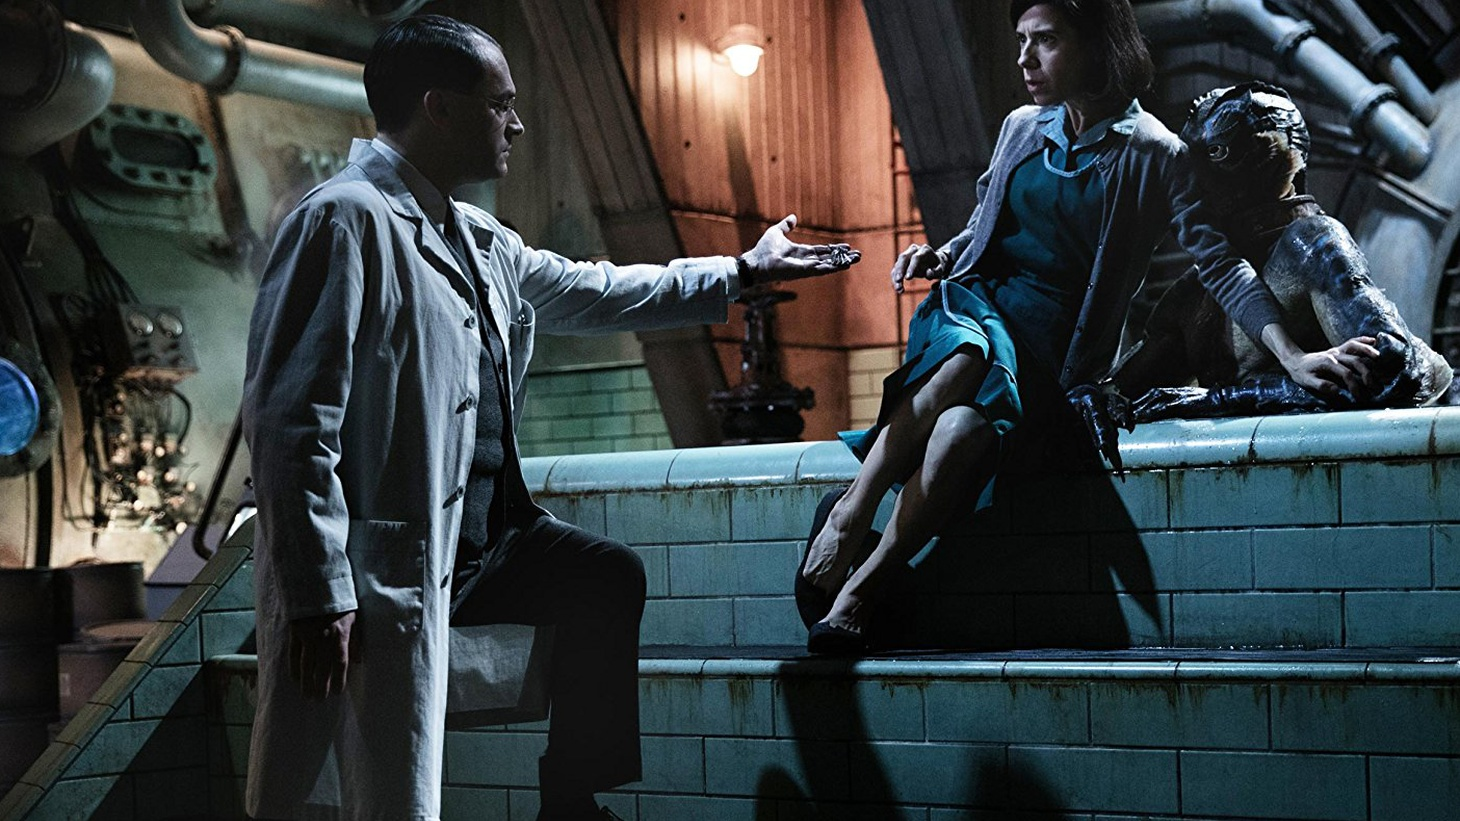 Guillermo del Toro's The Shape of Water is a flow of sumptuous images set to music, a flood tide of feelings with a mythic undertow..